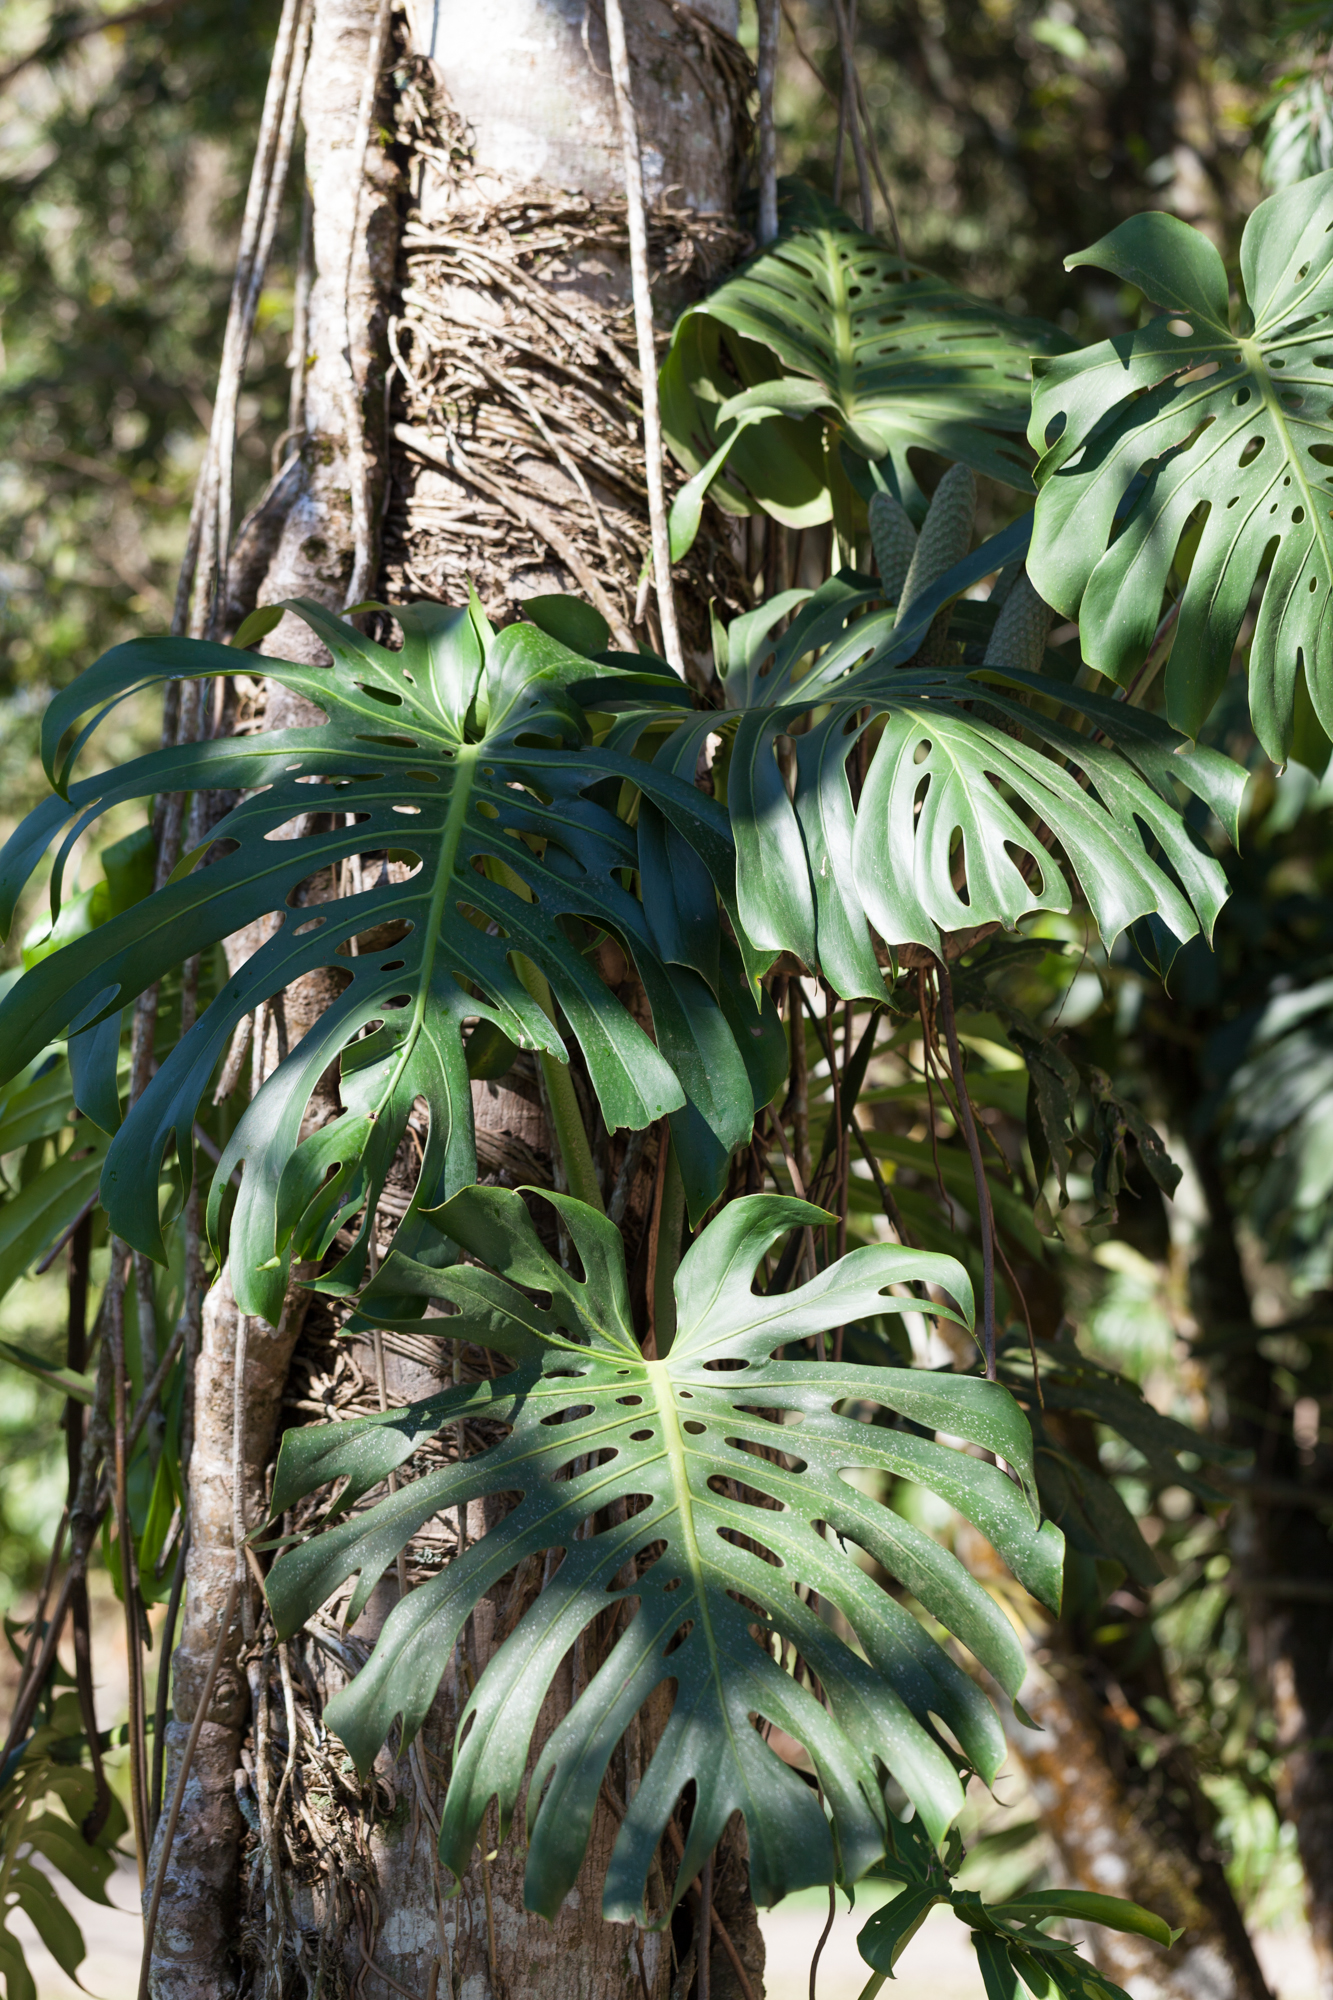 Monstera deliciosa  wrapped tightly around tree.